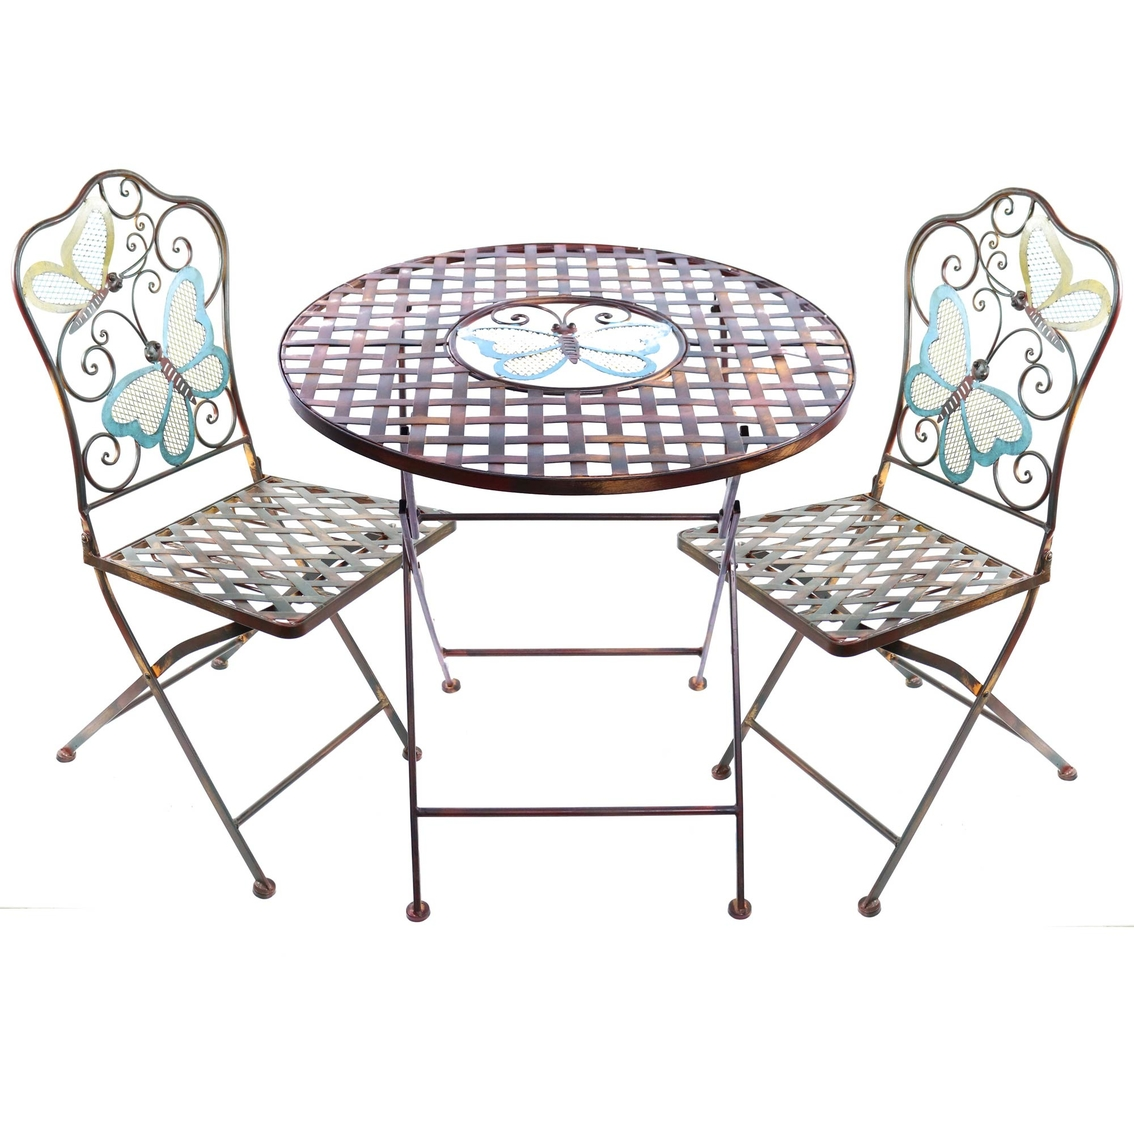 Table With Two Chairs Alpine Butterfly Bistro Table And Two Chairs Set Patio Sets